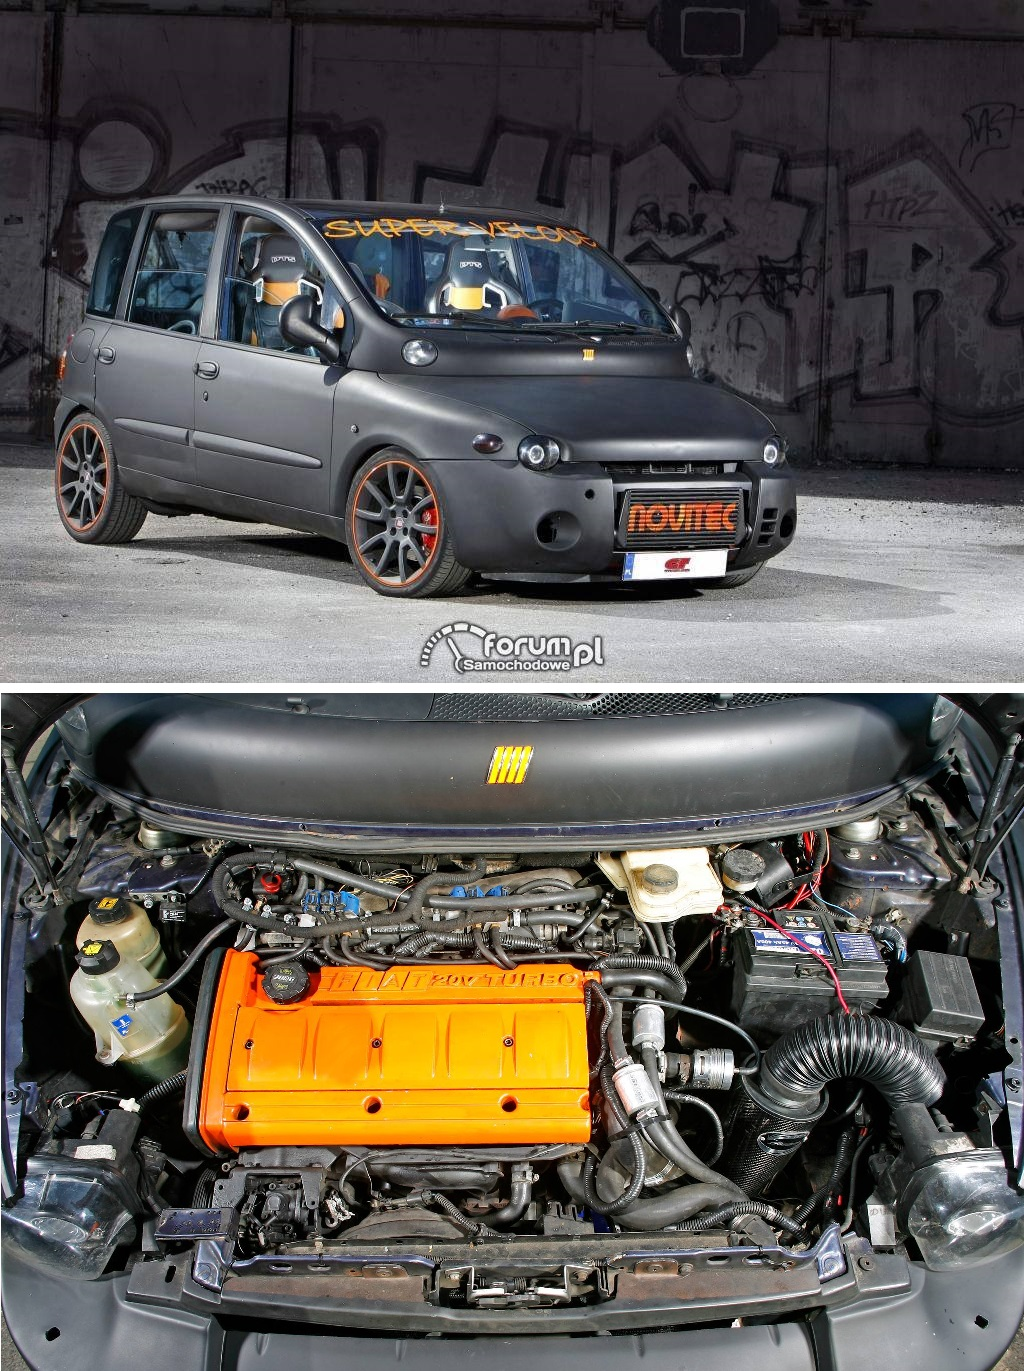 renault multipla with O33ylq on La Fiat Multipla Nest Pas Moche Elle Na Pas Un Physique Facile together with KAumBl also KmvVyL also Fiat Multipla 40076 additionally Fiat Multipla Goodbye Stranger 102451.